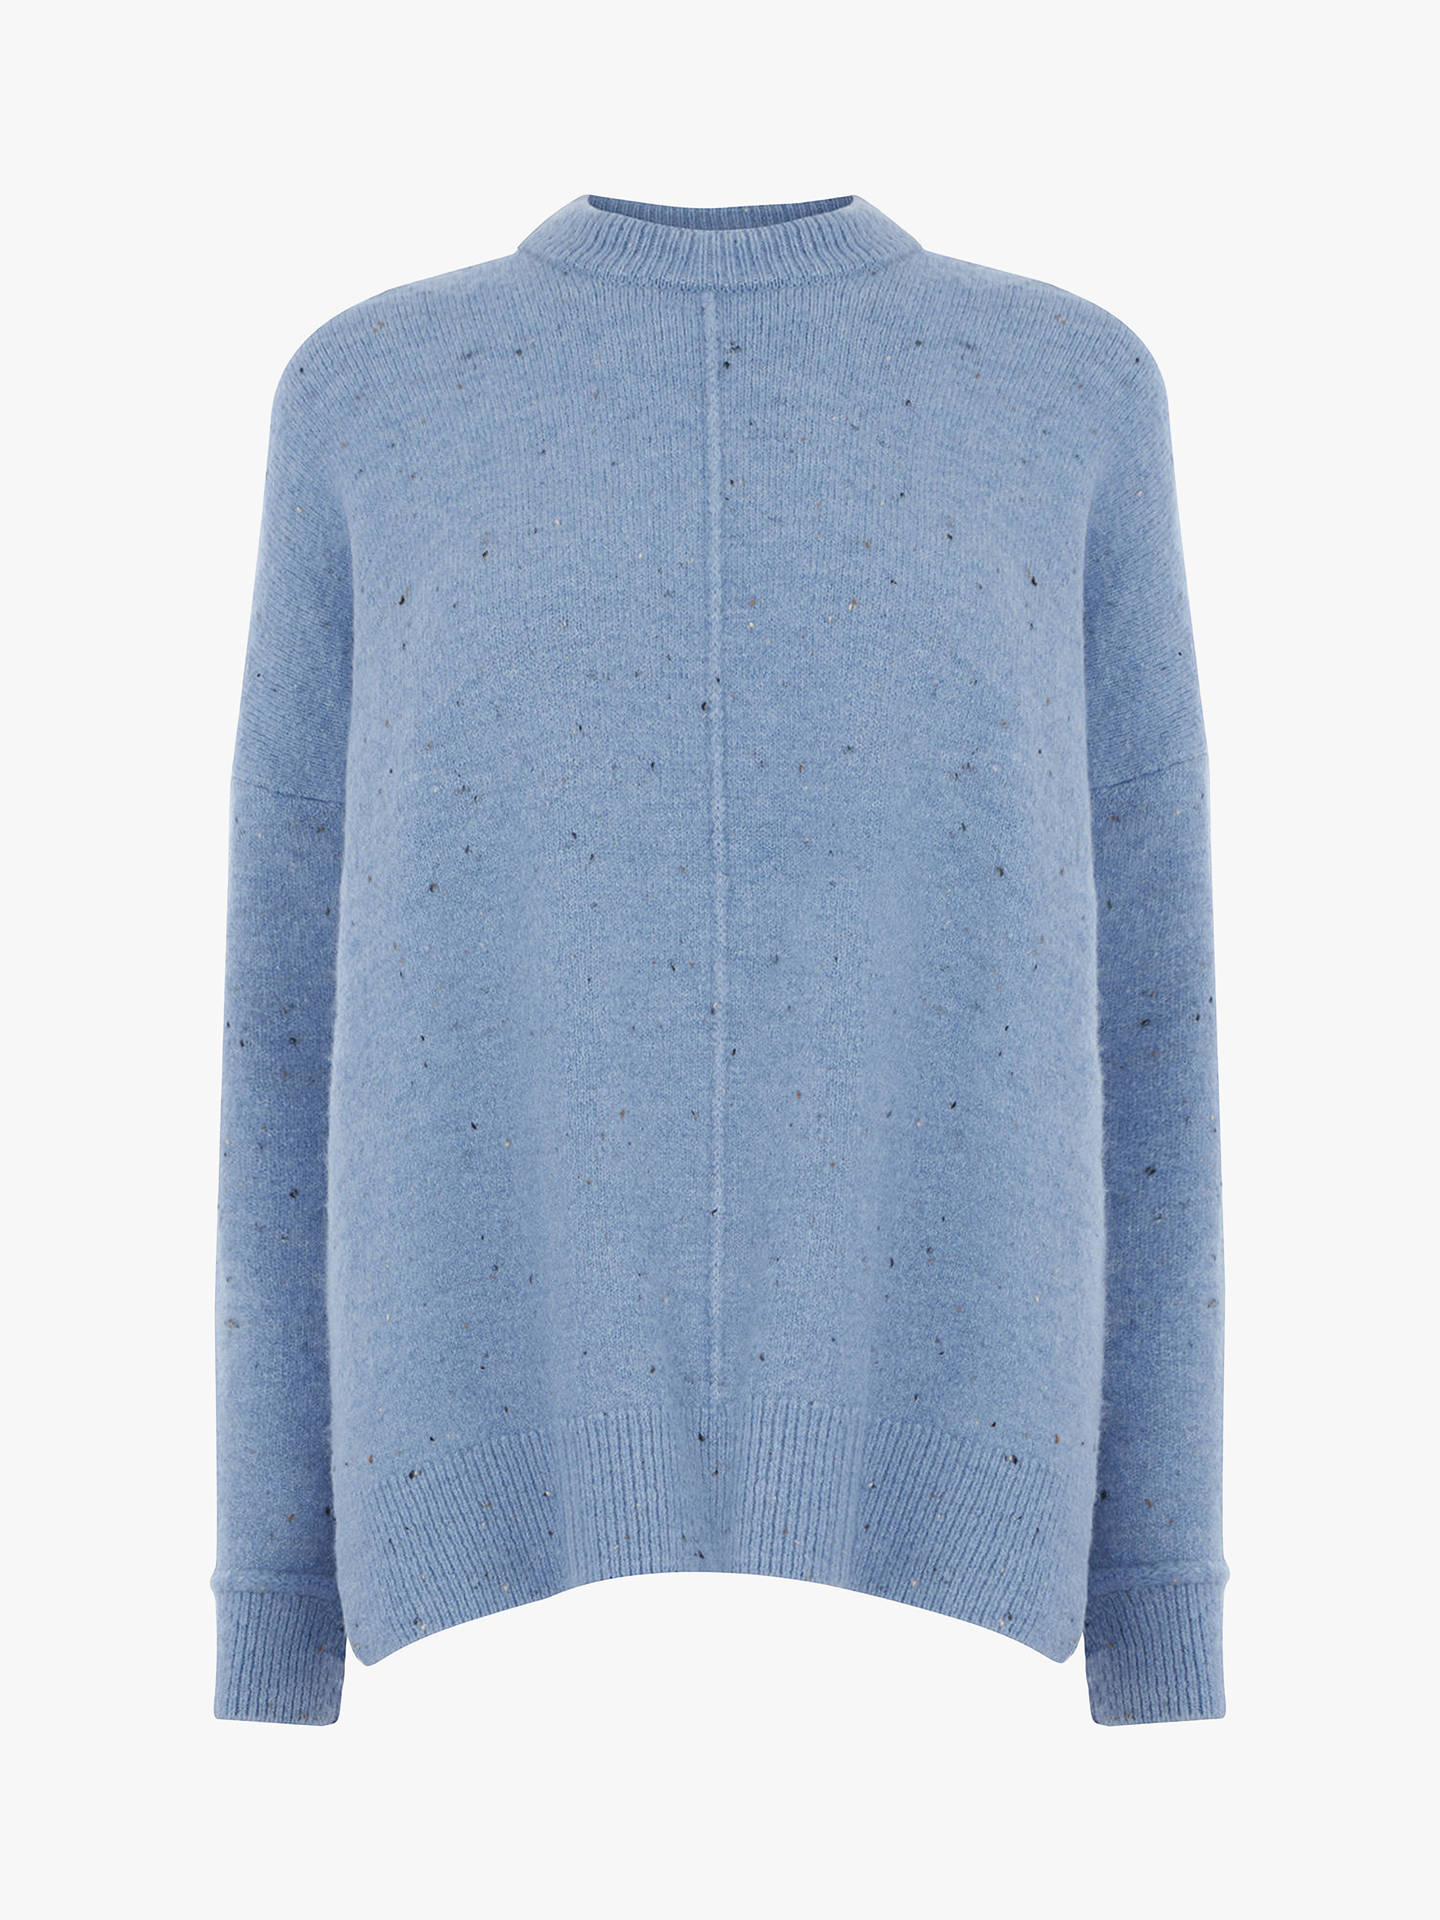 BuyWarehouse Neppy Cosy Jumper, Light Blue, 8 Online at johnlewis.com